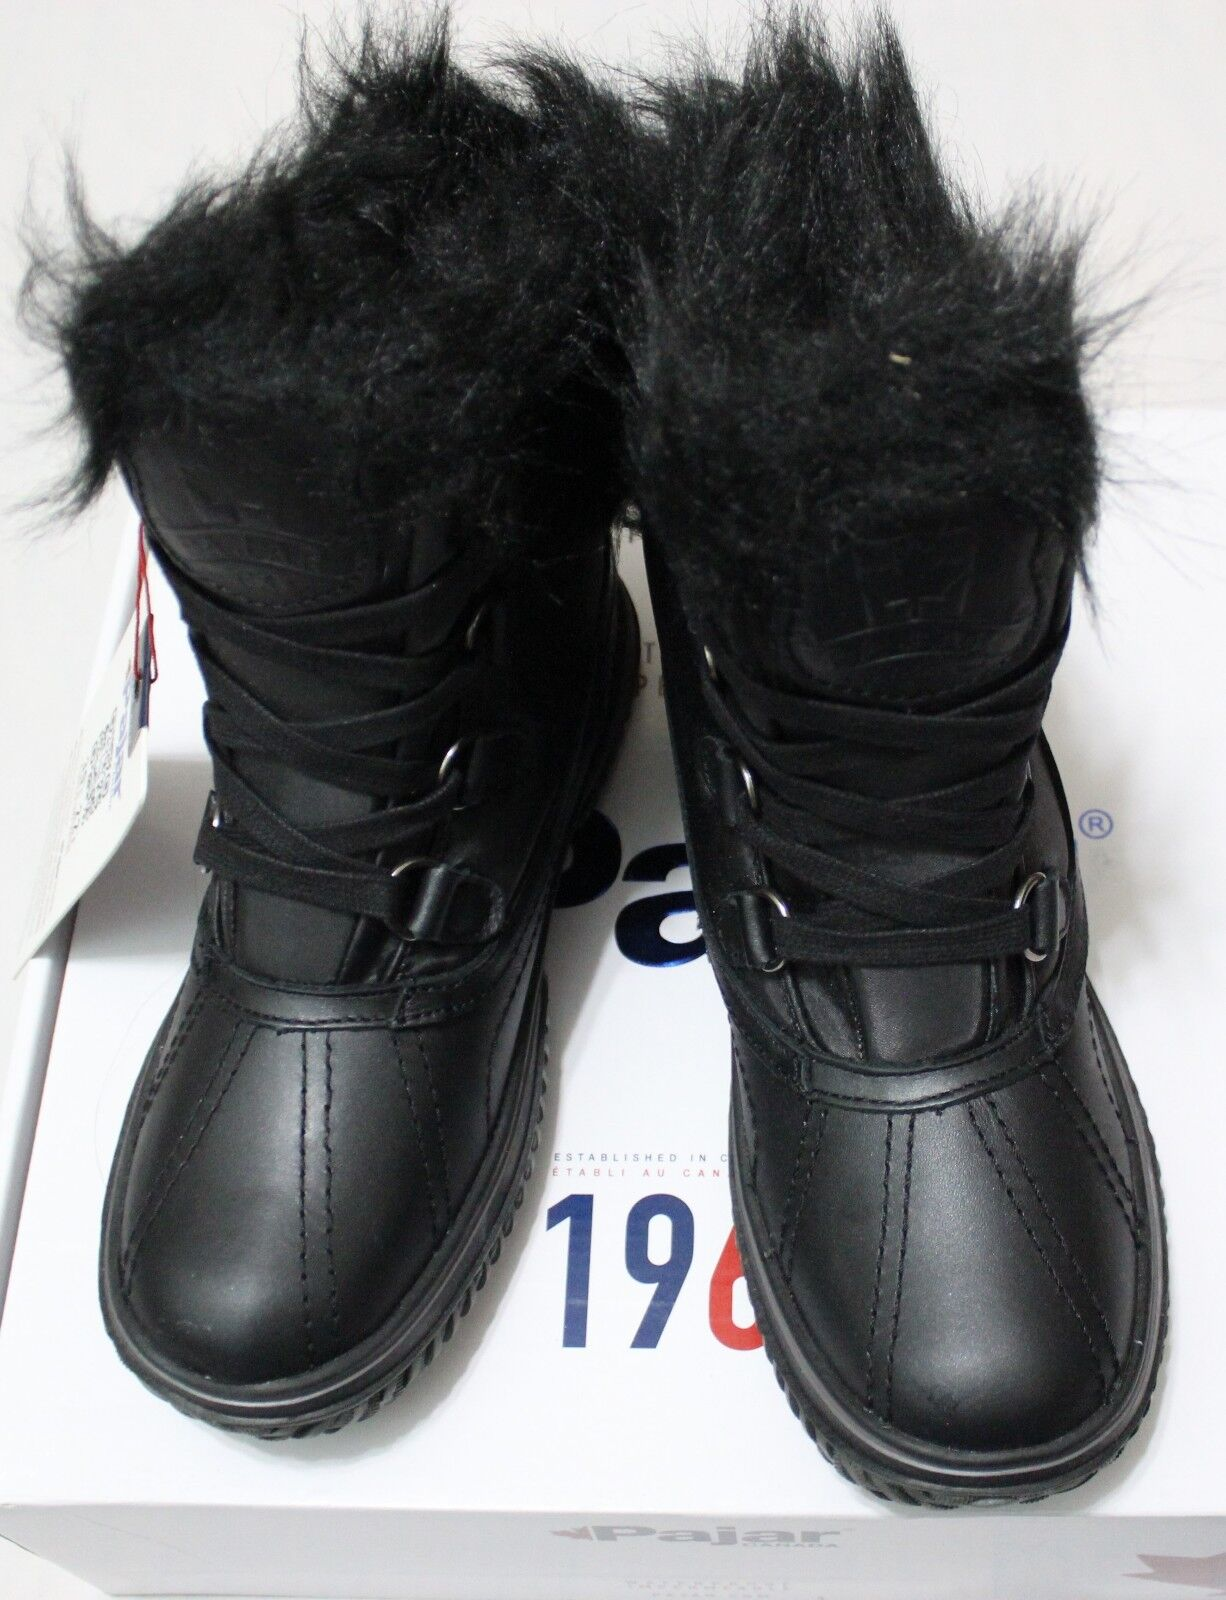 165 PAJAR ICELIA BLACK WATERPROOF FAUX FUR BOOT US 5-5.5/ M